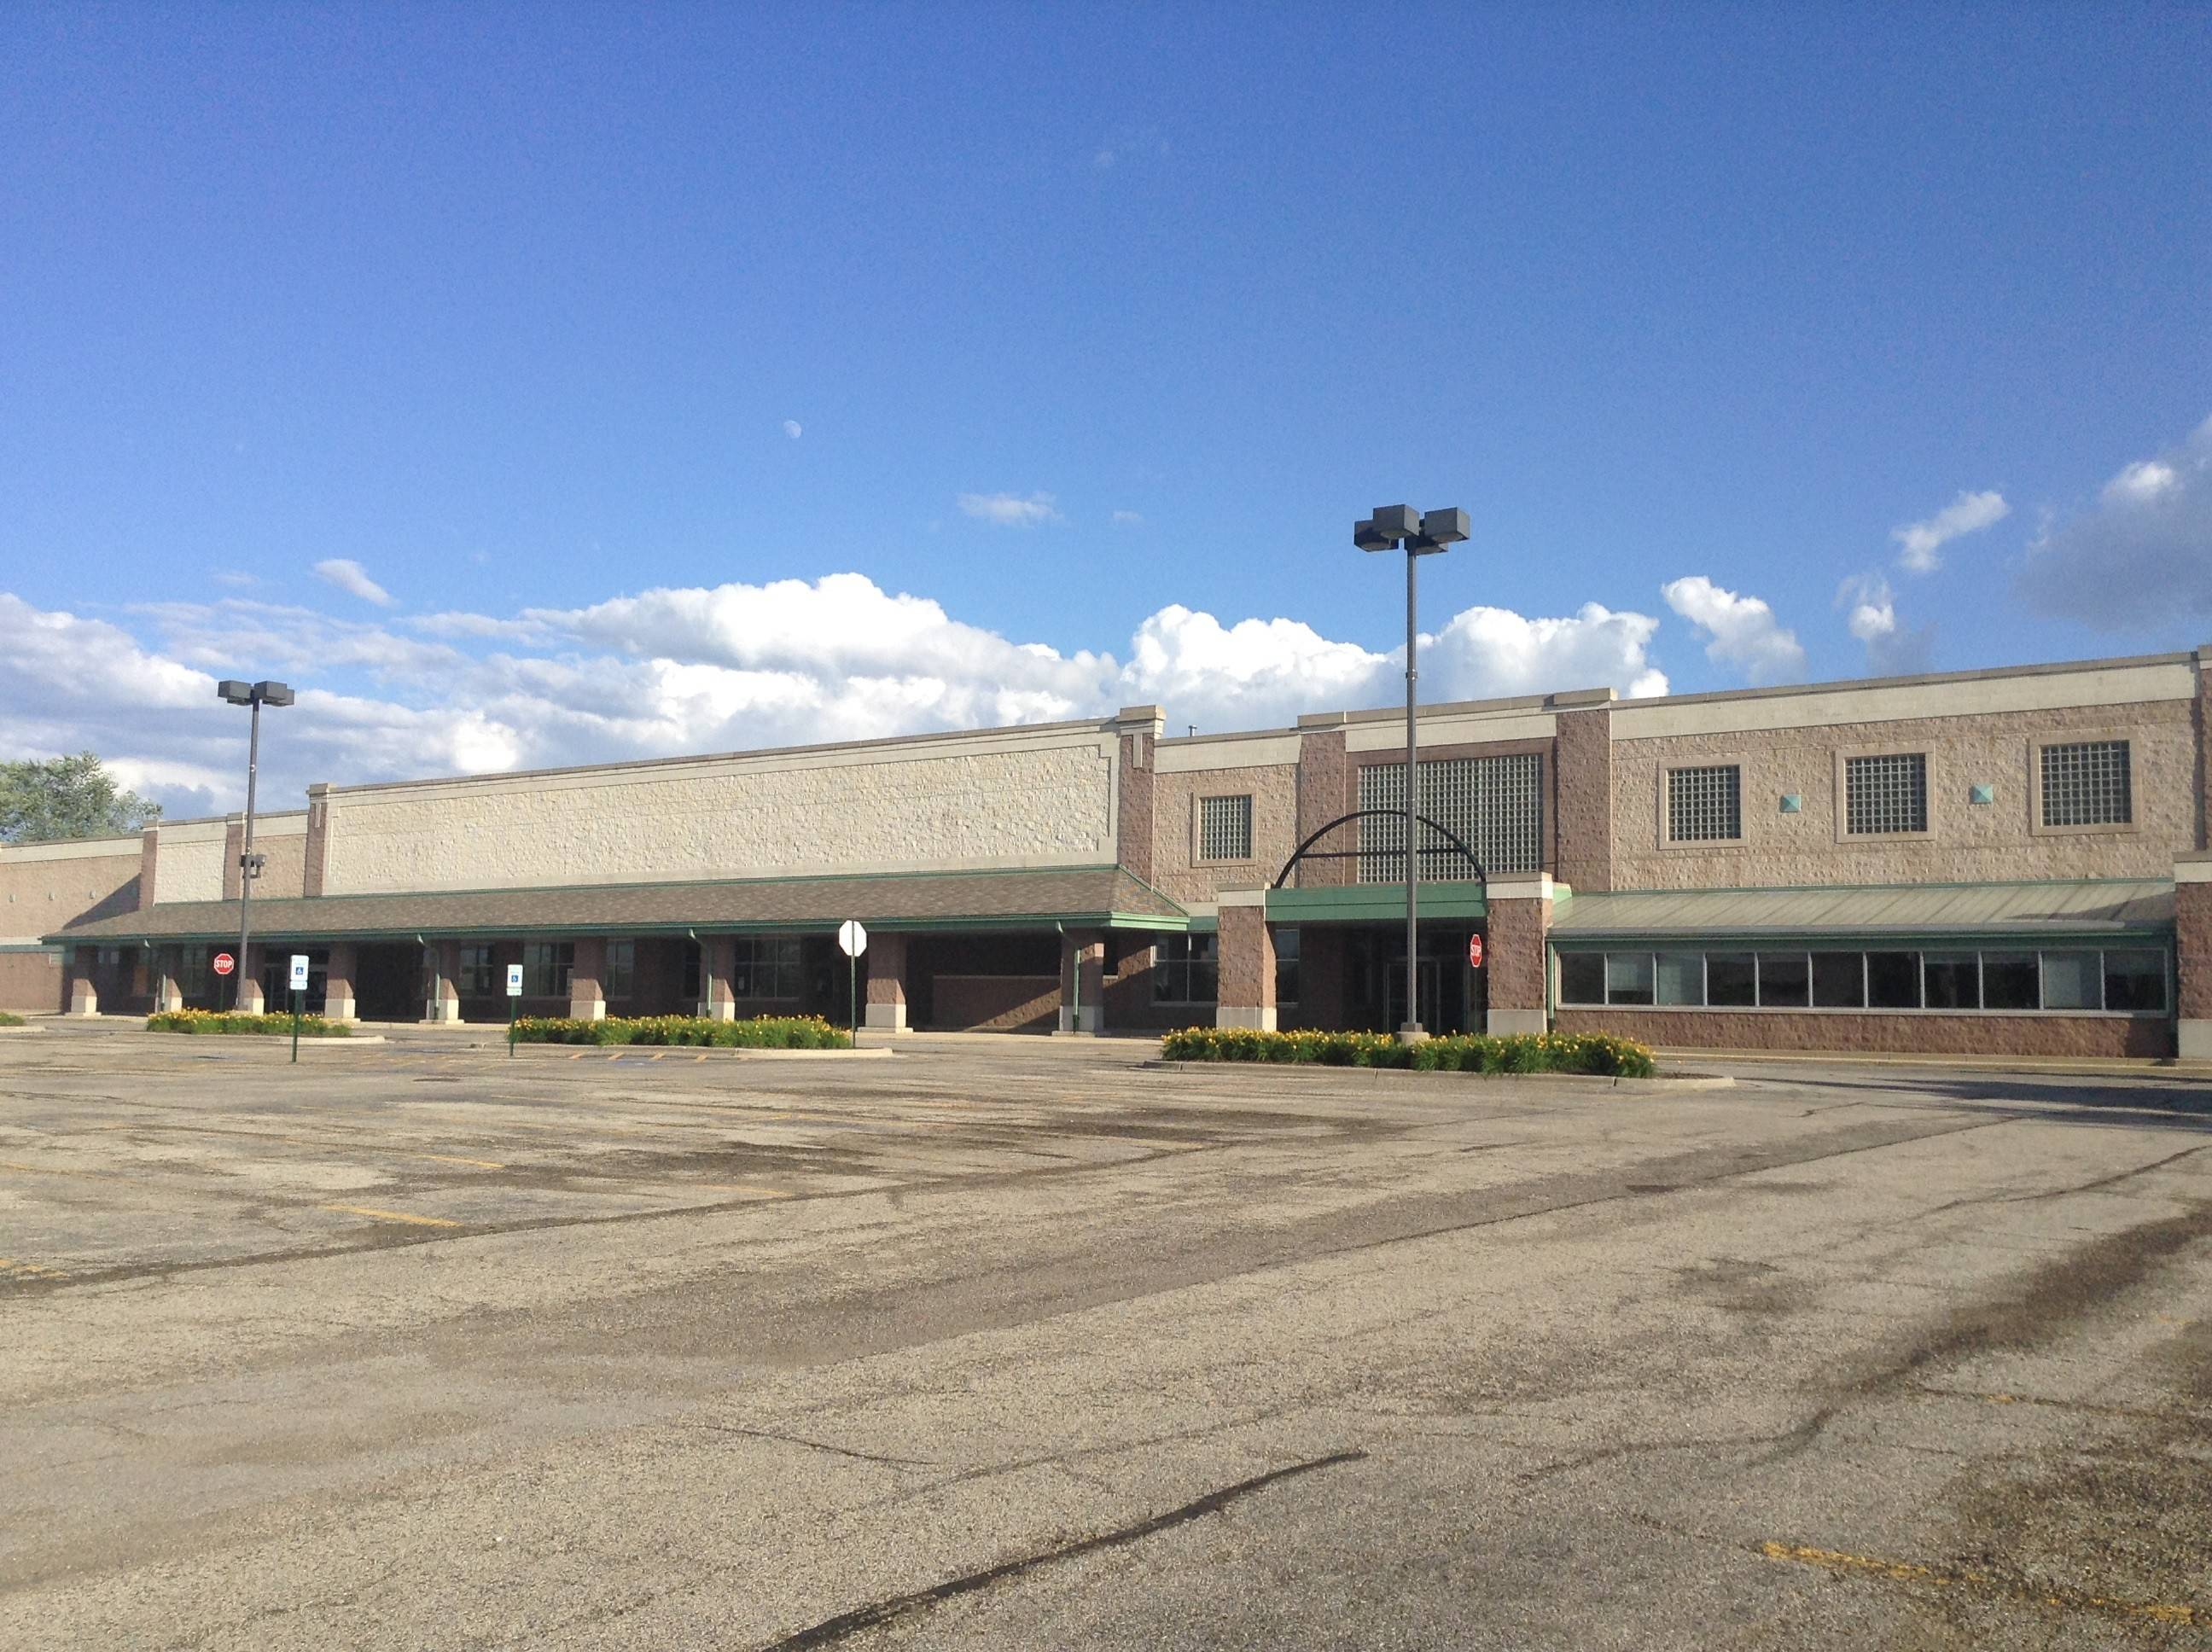 Developers want to open a self-storage facility in a former Dominick's Finer Foods supermarket in Wauconda.